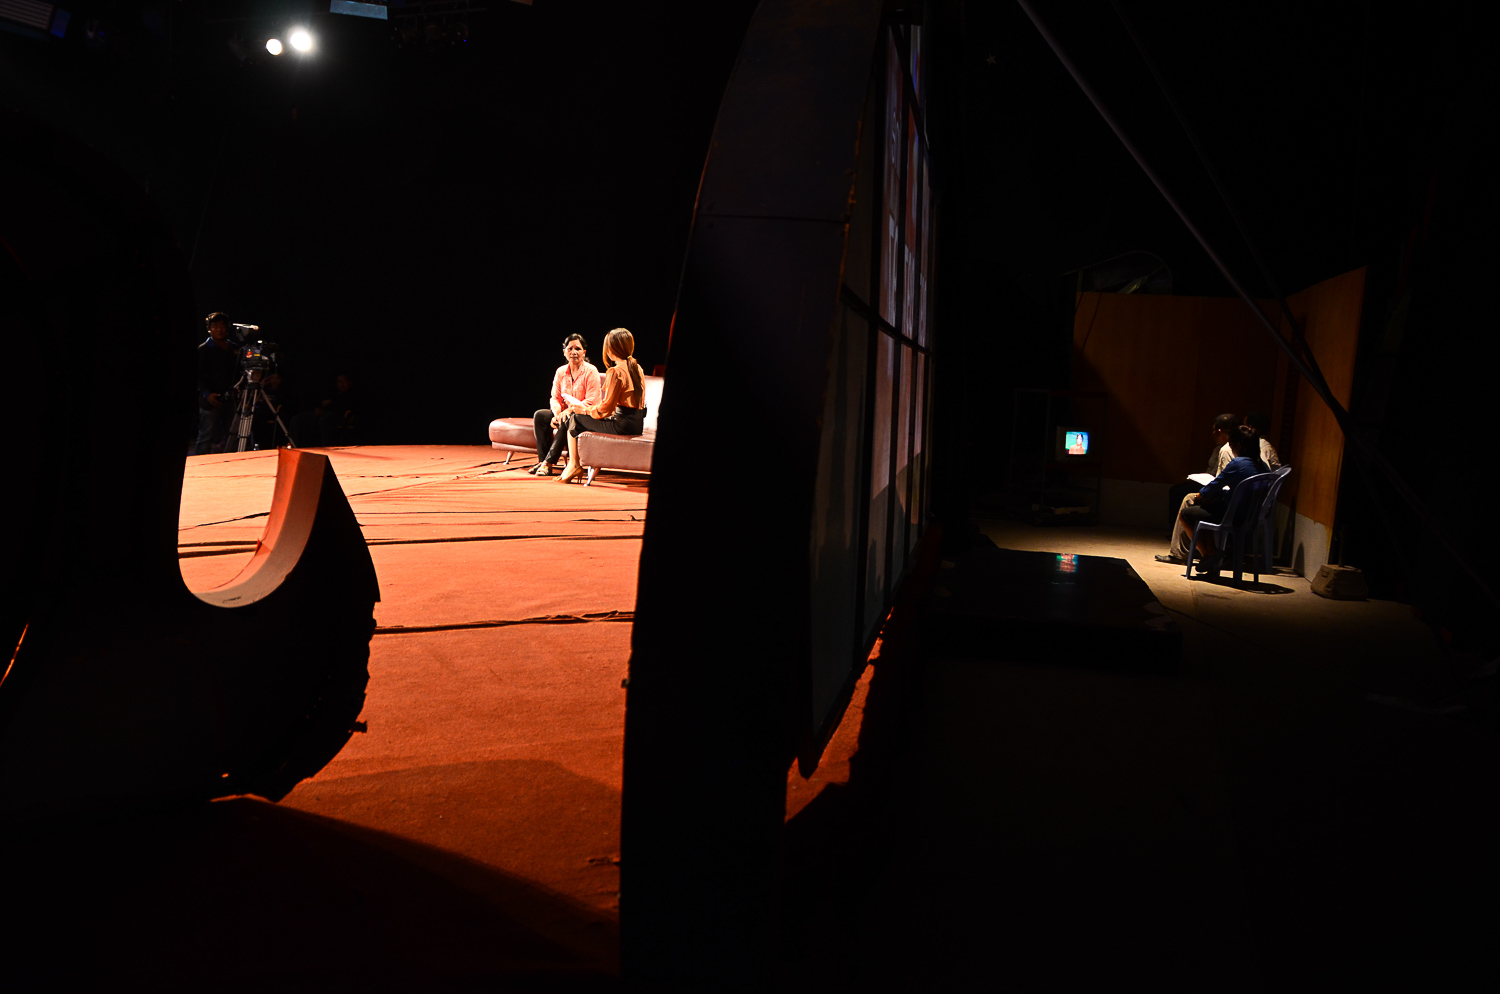 Seak Mala, left, sits on stage with the show's host, her uncle, Khoem Sarom, waits backstage with his family. The pair have not seen each other in almost 35 years.